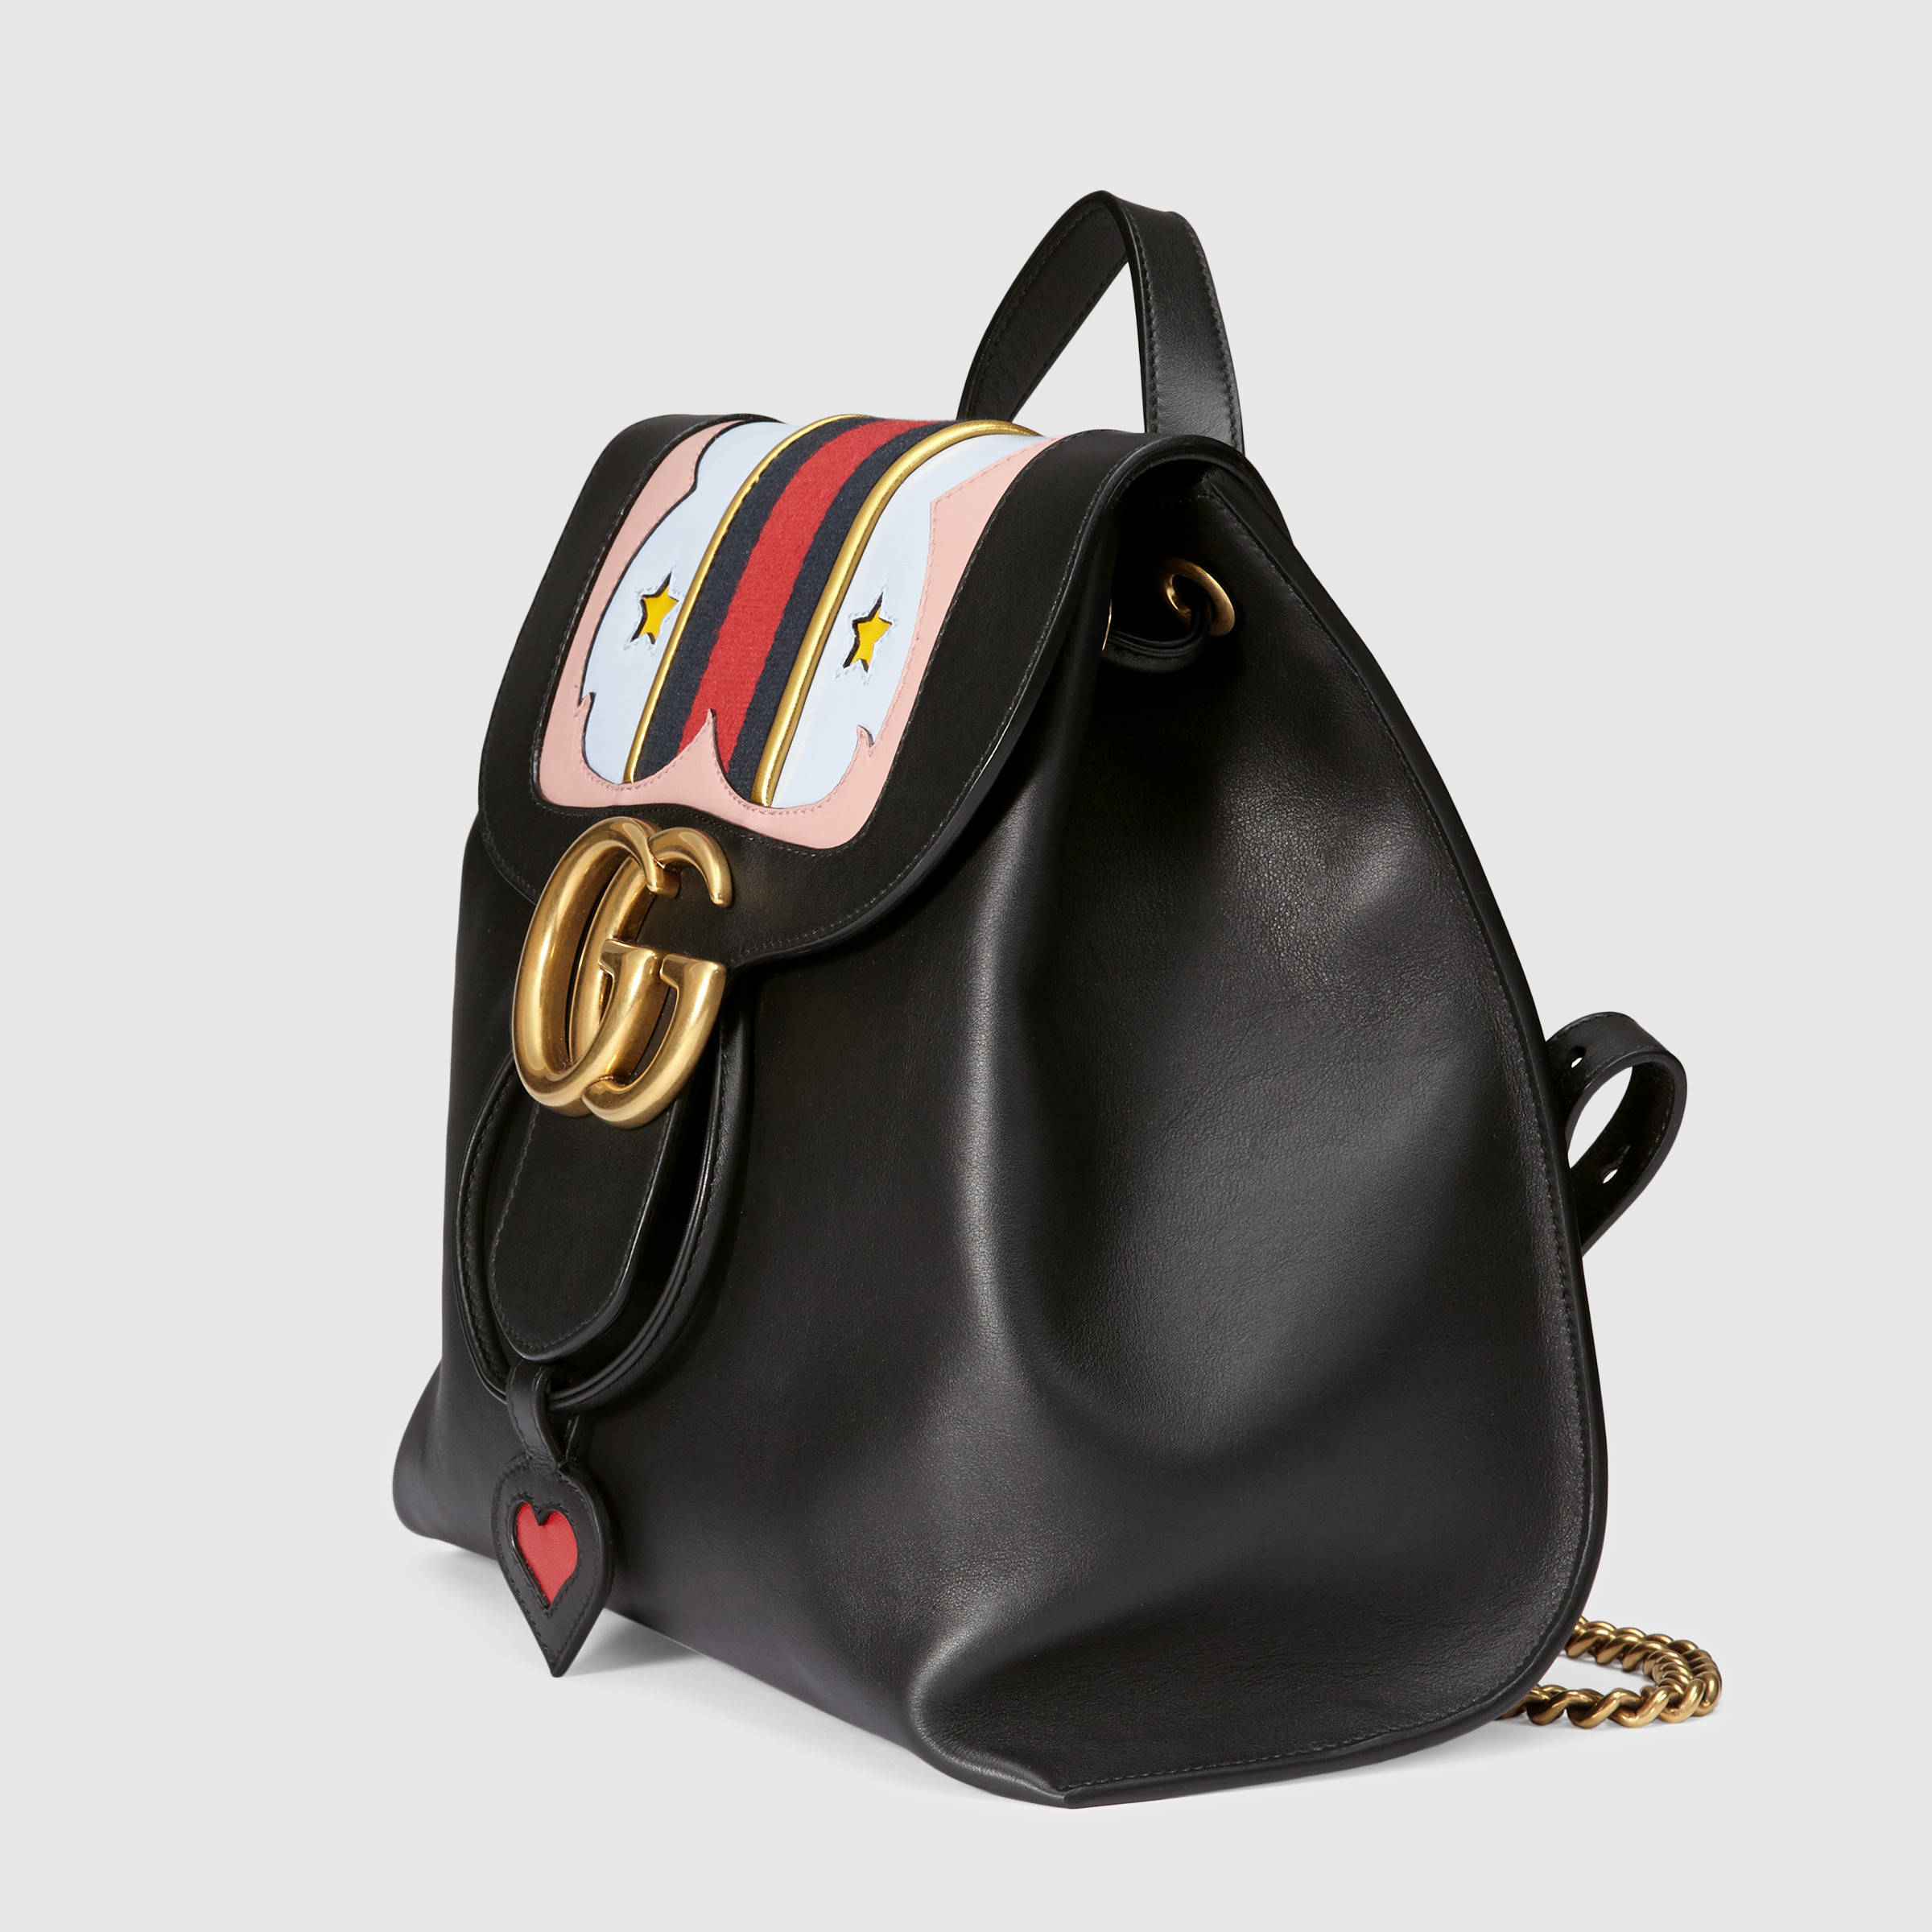 Gucci GG Marmont Leather Backpack in Black - Lyst 36f8d9fa57073